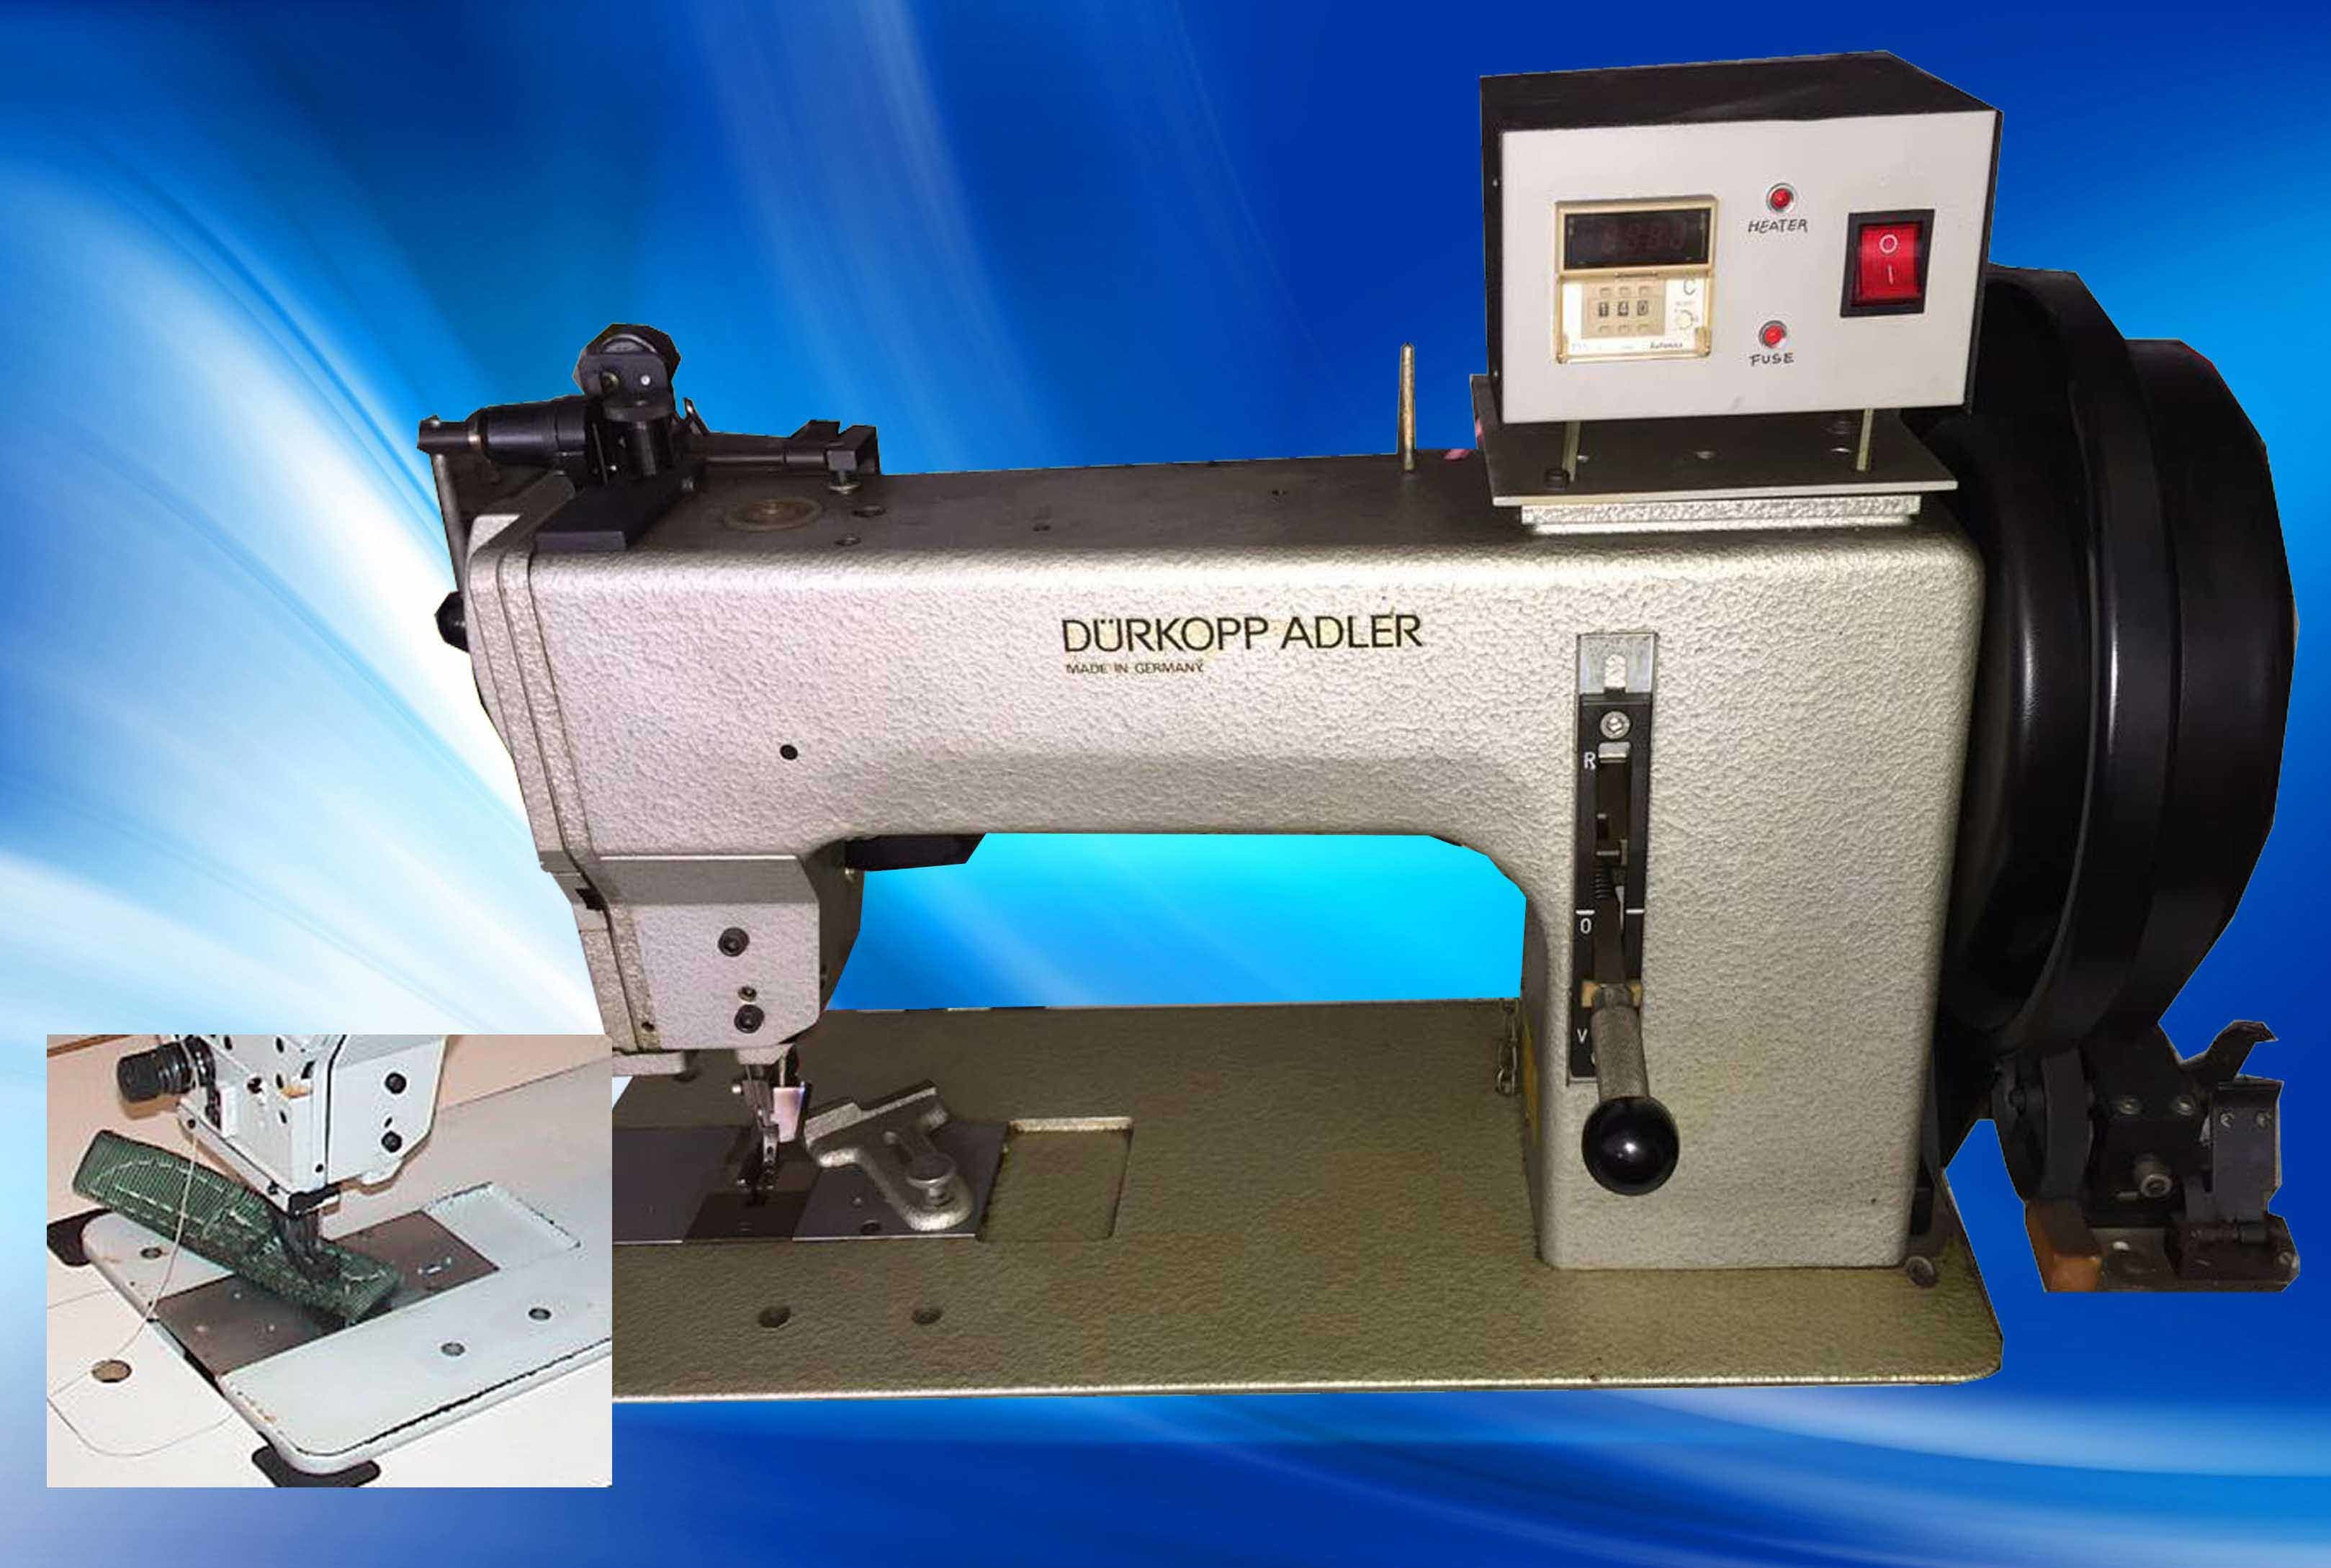 Used Triple Feeding Durkopp Adler Sewing Machine (DA-204)